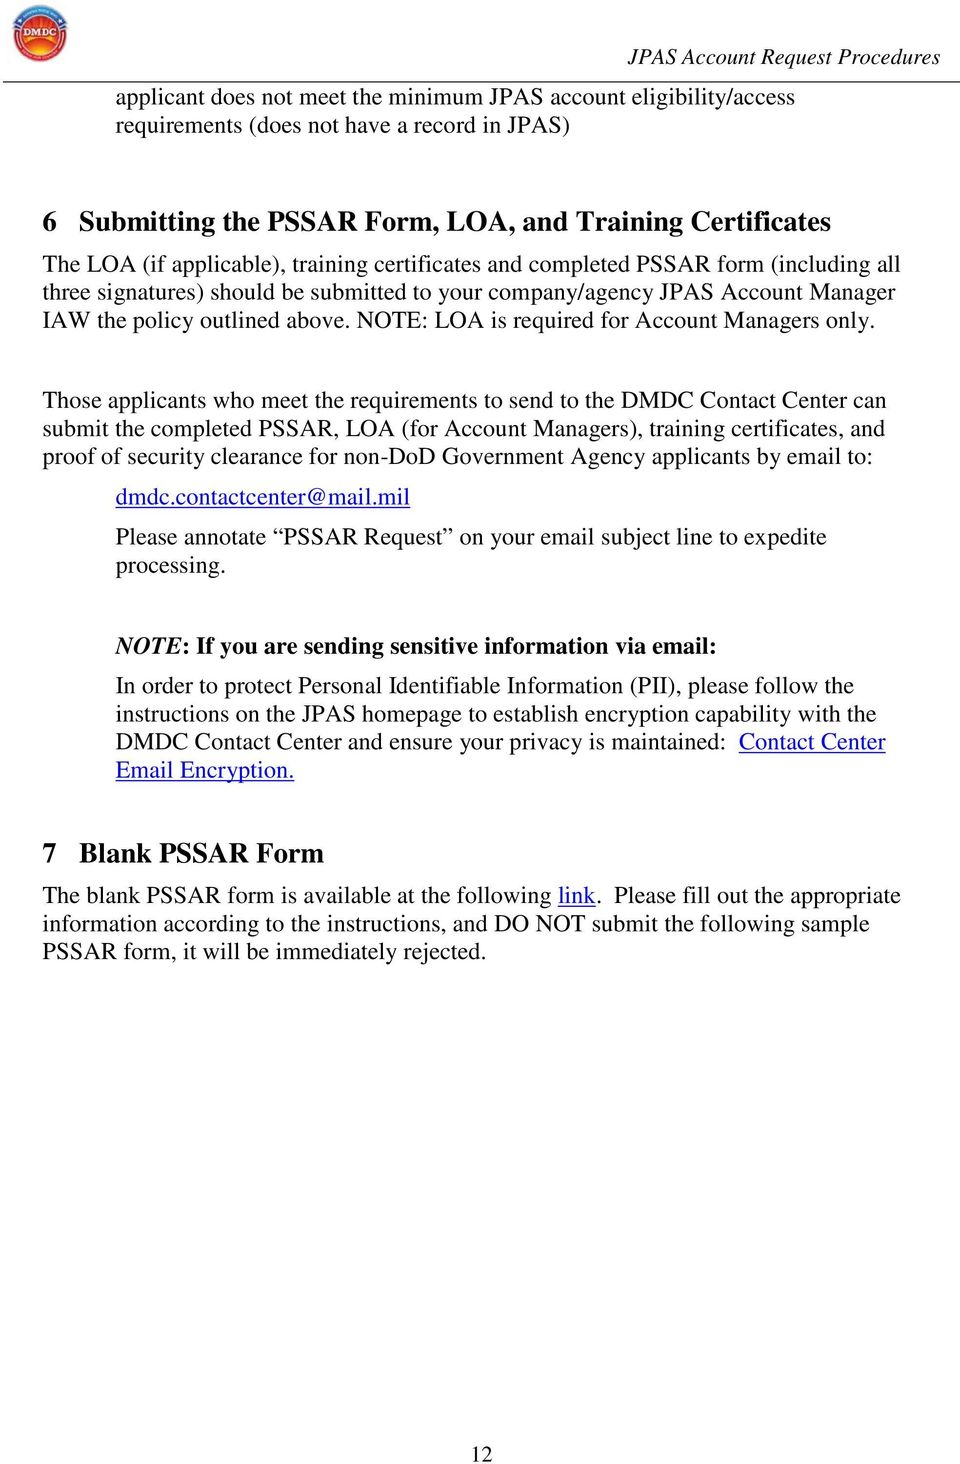 Joint Personnel Adjudication System JPAS Account Request – Security Policy Sample